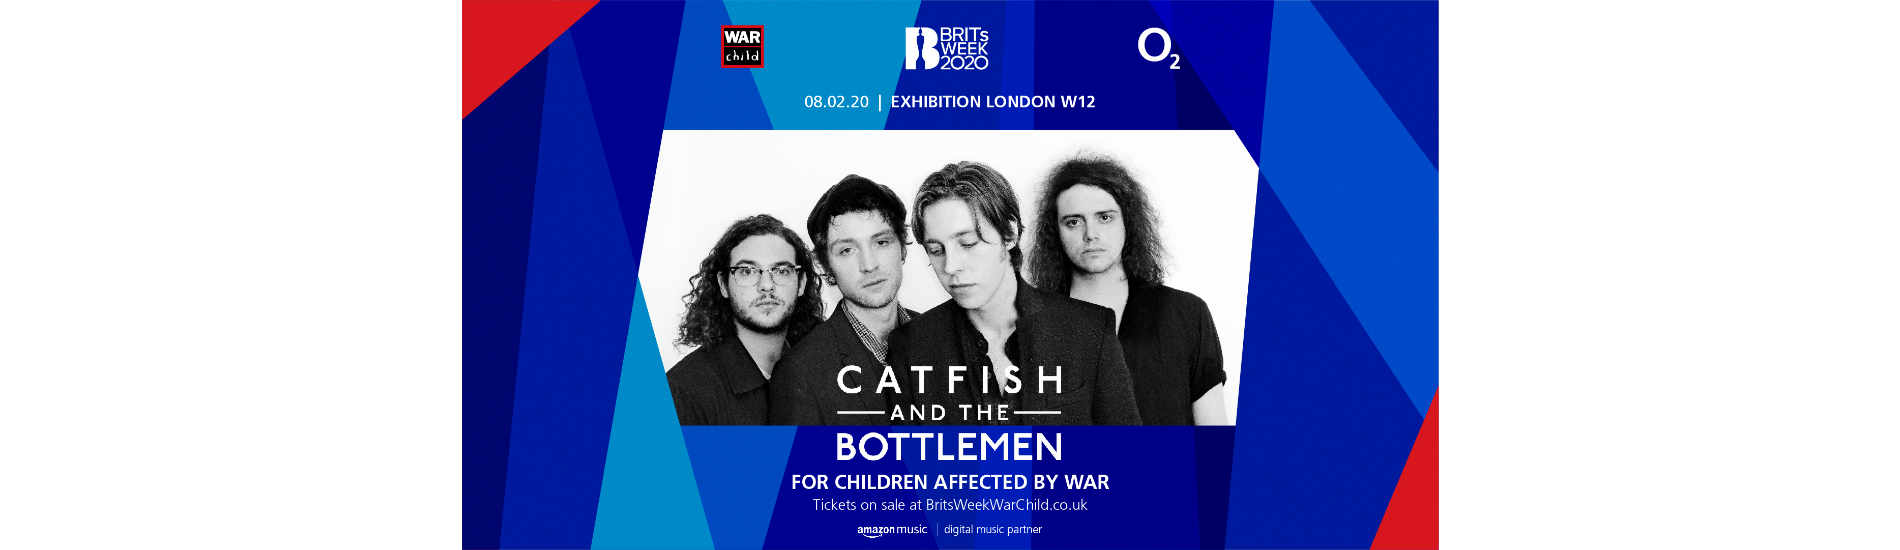 BRITs Week 2020 / Catfish and the Bottlemen